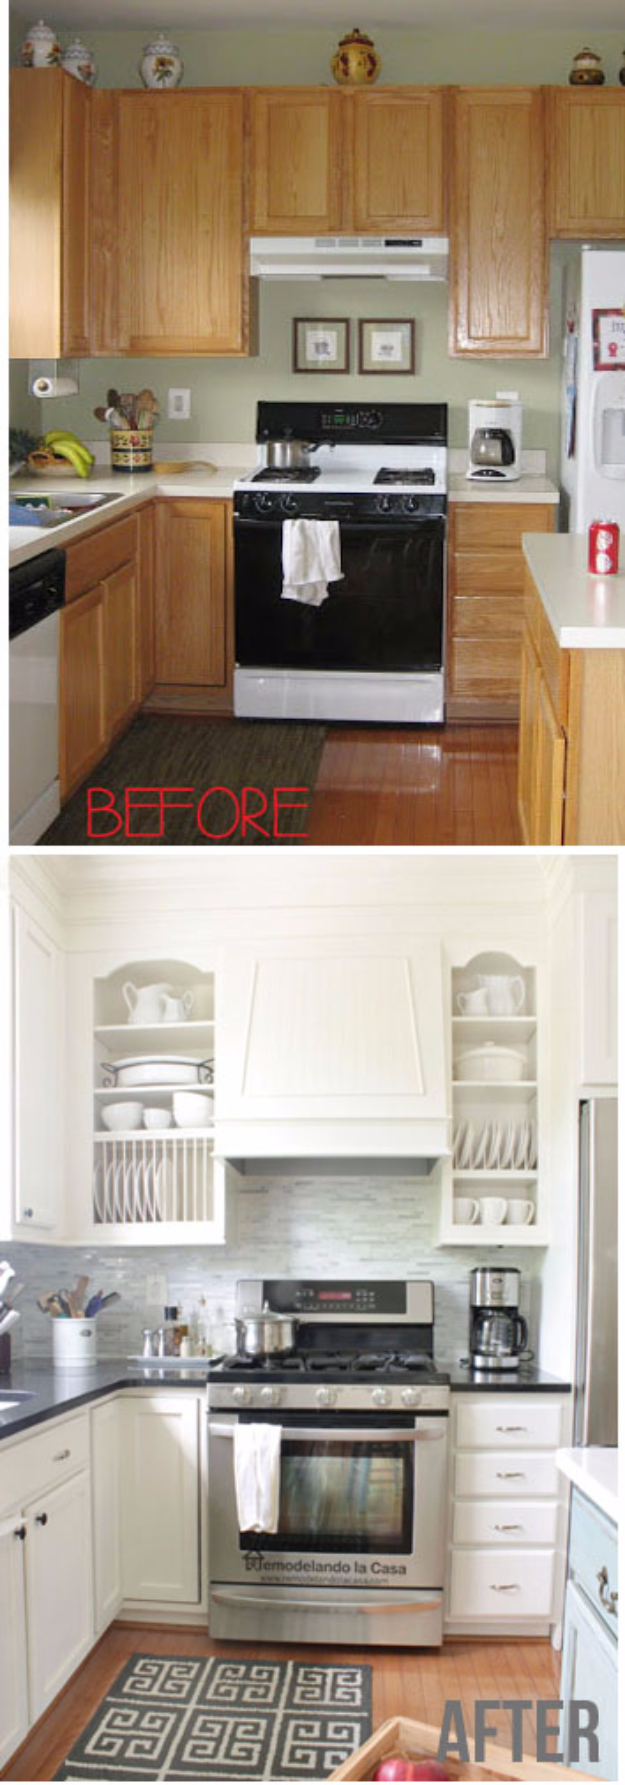 DIY Kitchen Makeover Ideas - Range Hood Makeover - Cheap Projects Projects You Can Make On A Budget - Cabinets, Counter Tops, Paint Tutorials, Islands and Faux Granite. Tutorials and Step by Step Instructions